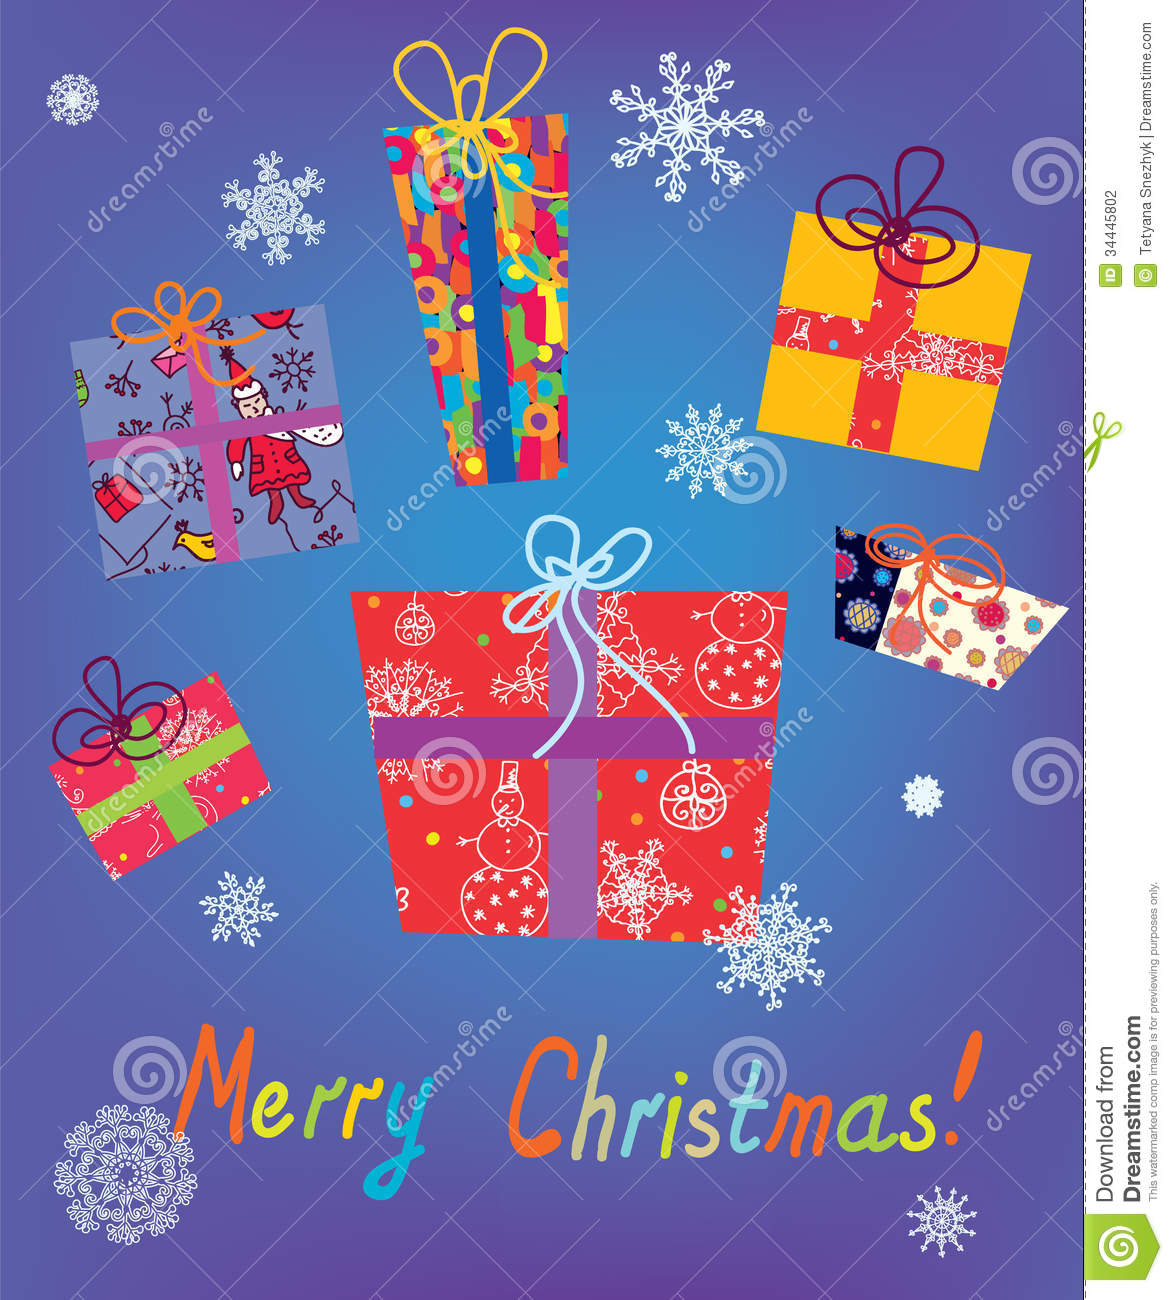 Christmas Card With Gifts And Snow Stock Vector Illustration Of Celebration Shadow 34445802